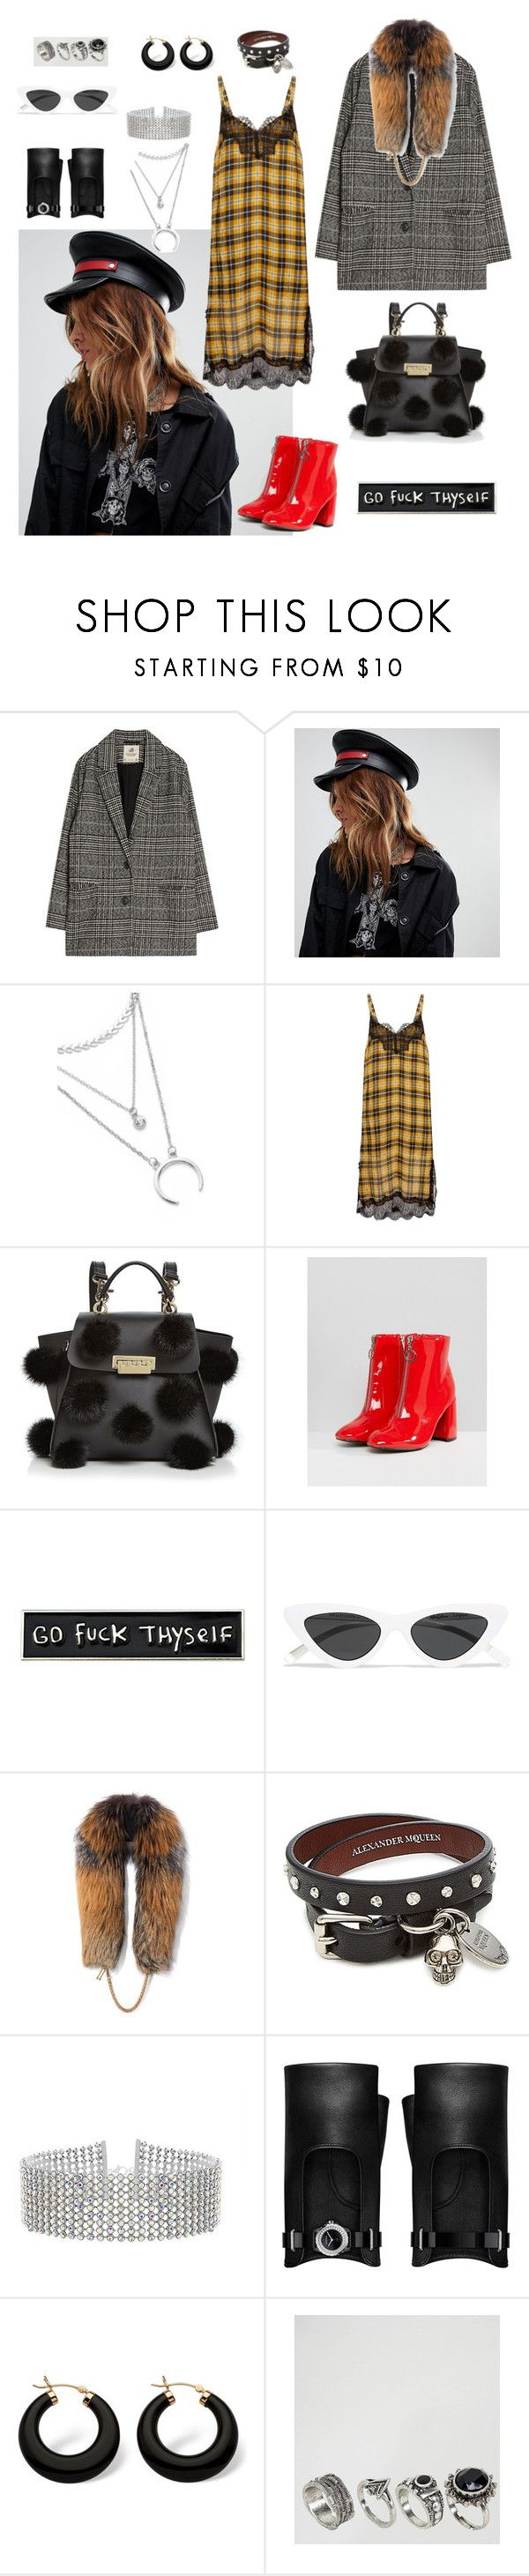 """""""Damn, girl"""" by laurapaganiposta ❤ liked on Polyvore featuring Sacred Hawk, ZAC Zac Posen, Lost Ink, RIPNDIP, Le Specs, Demarson, Alexander McQueen, Steve Madden, Chanel and Palm Beach Jewelry"""